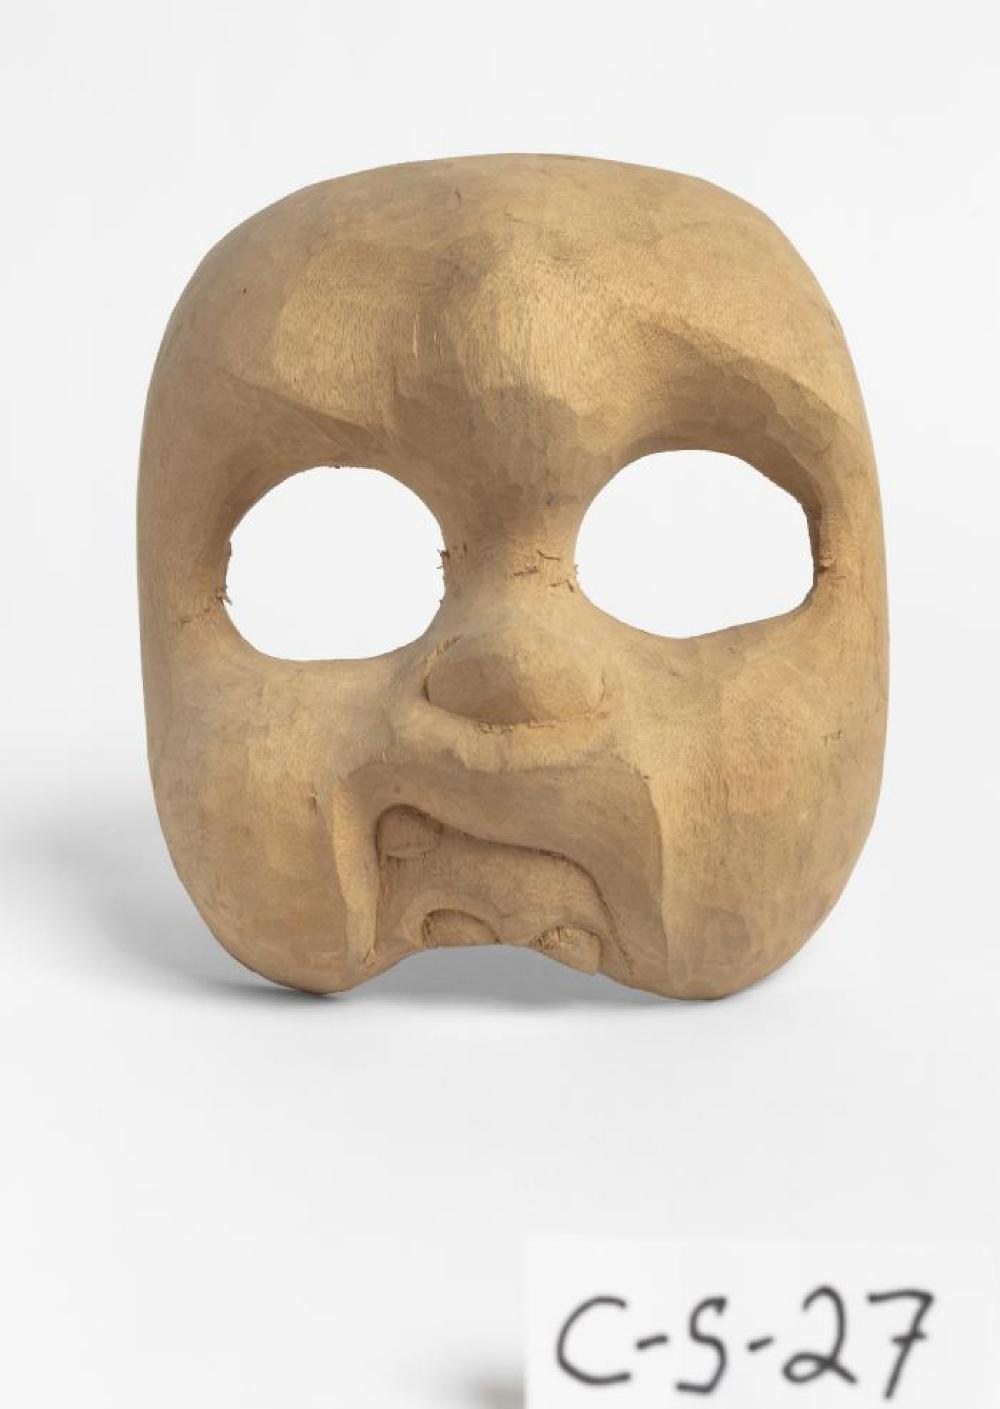 Balinese; Topeng Bondres Mask; 20th century; Wood; 5 7/8 x 5 3/8 x 2 1/2 in.; Collection of Isamu Noguchi. (Study Collection; Collectibles, C-S-27)